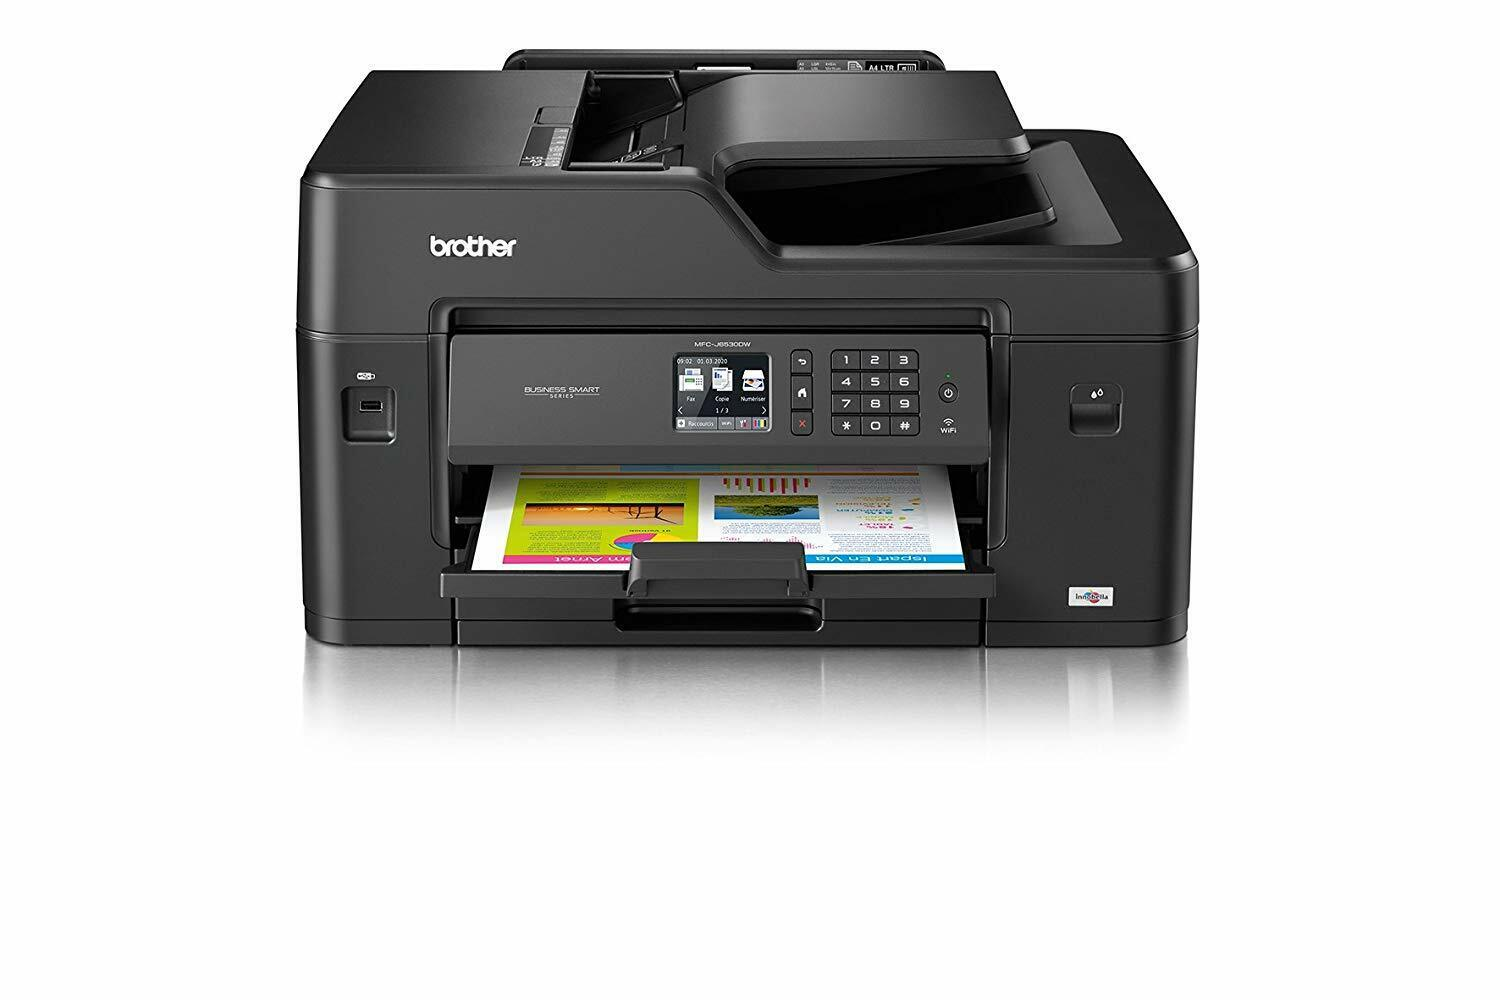 Brother imprimante multifonctions mfc-j6530dw 4-in-1 wi-fi usb2.0 airprint noir